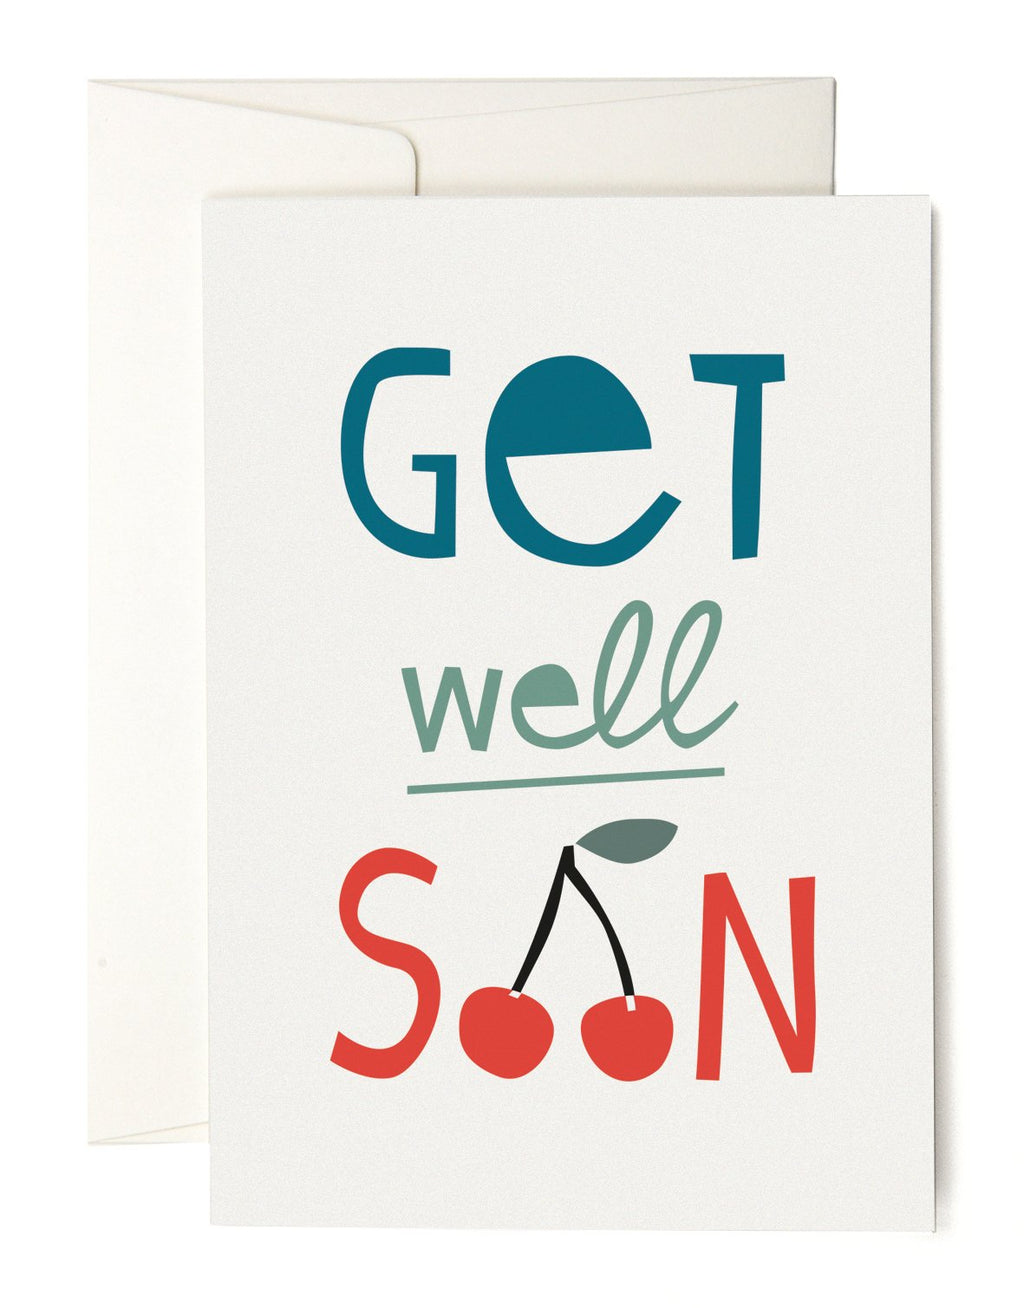 PLEASED TO MEET GET WELL SOON Klappkarte / WILDHOOD store